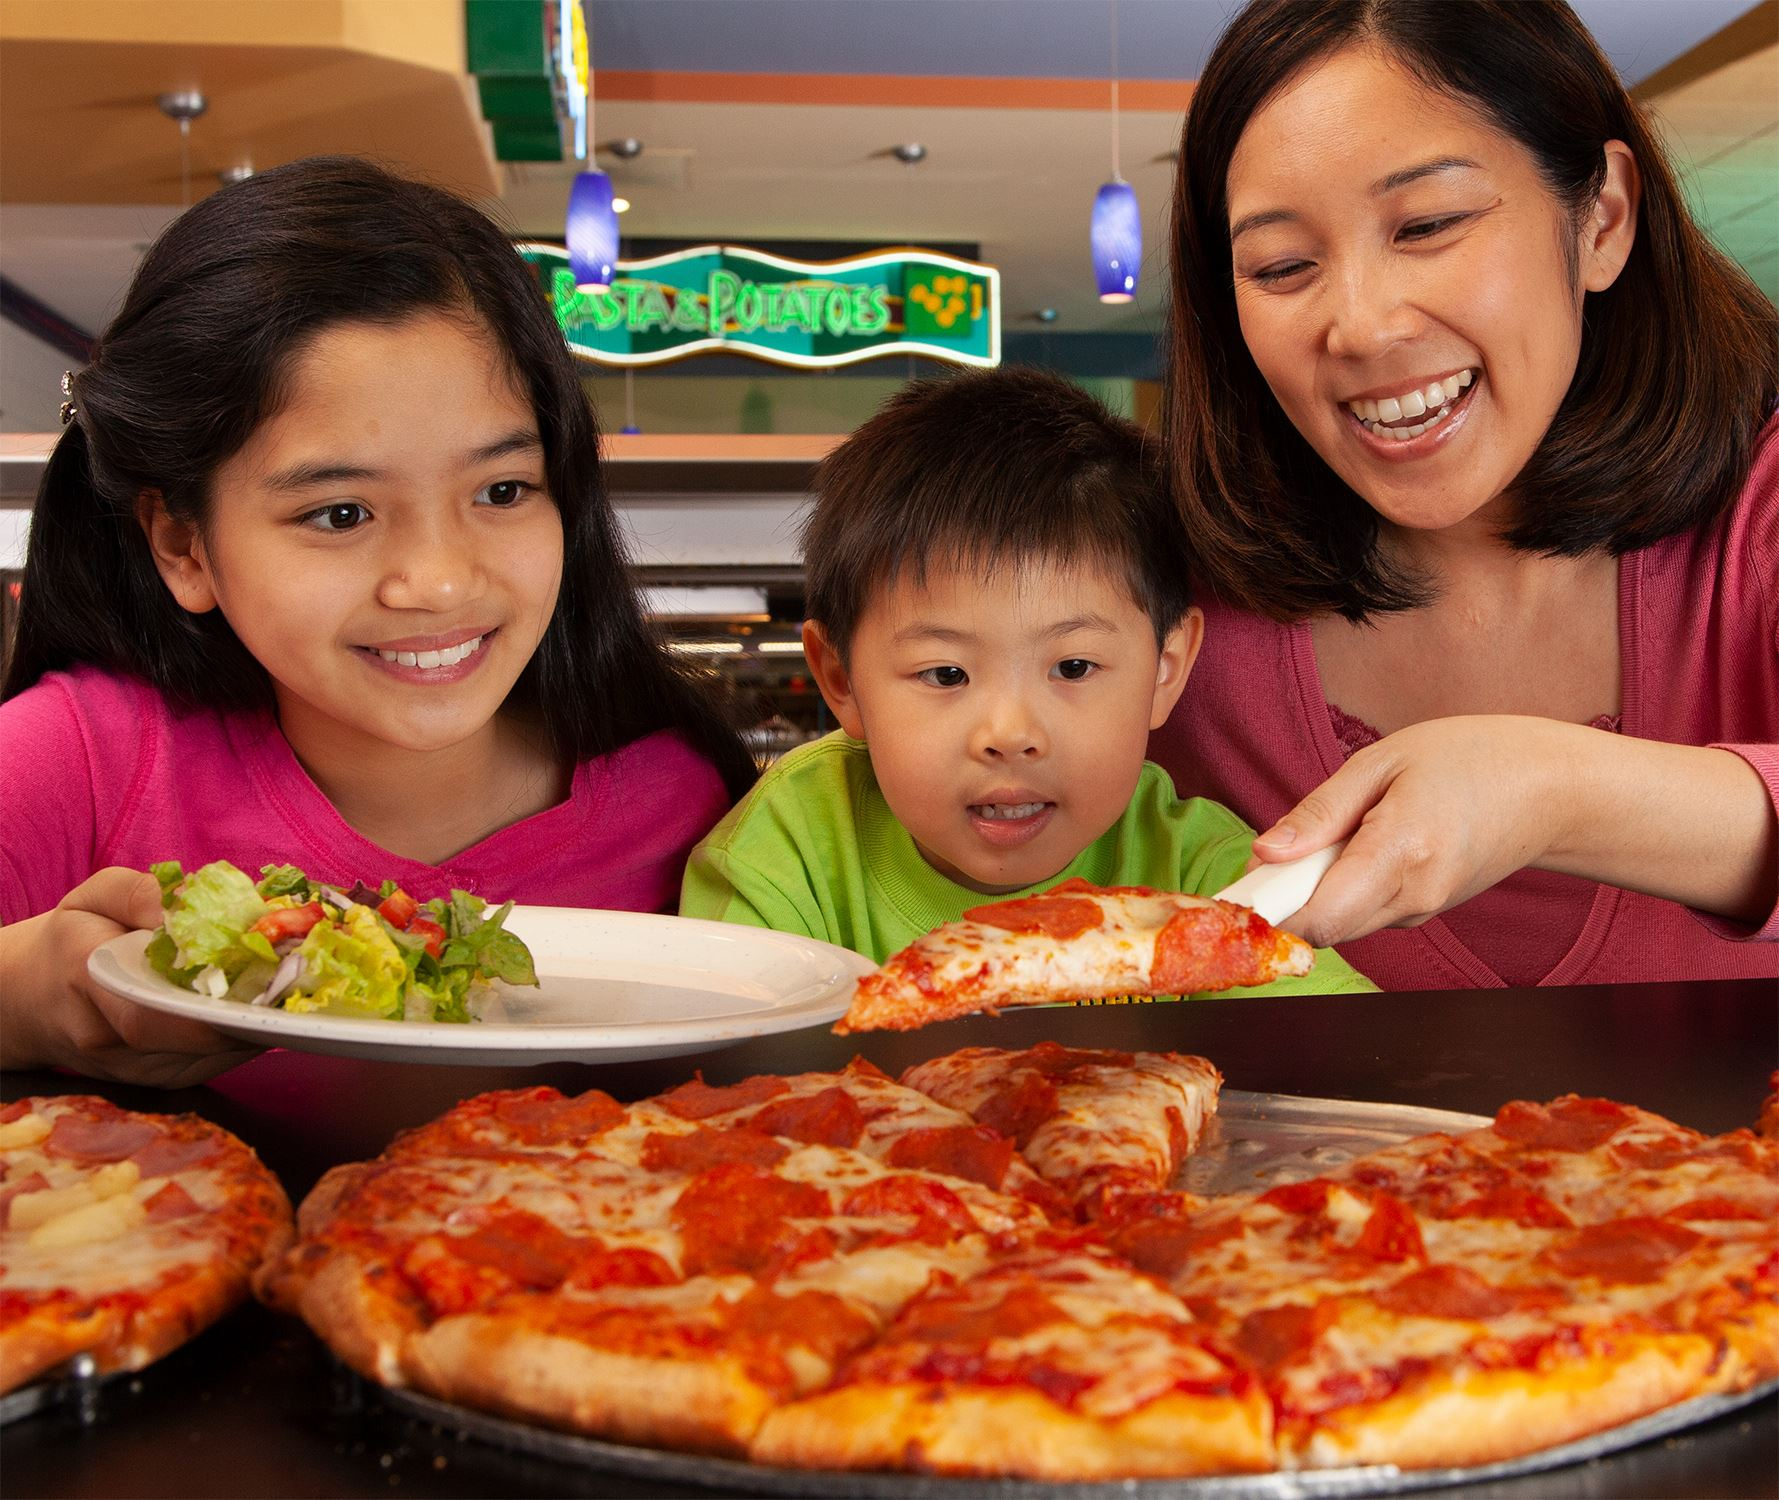 Family at Buffet with pizza and salad at John's Incredible Pizza in Buena Park, CA